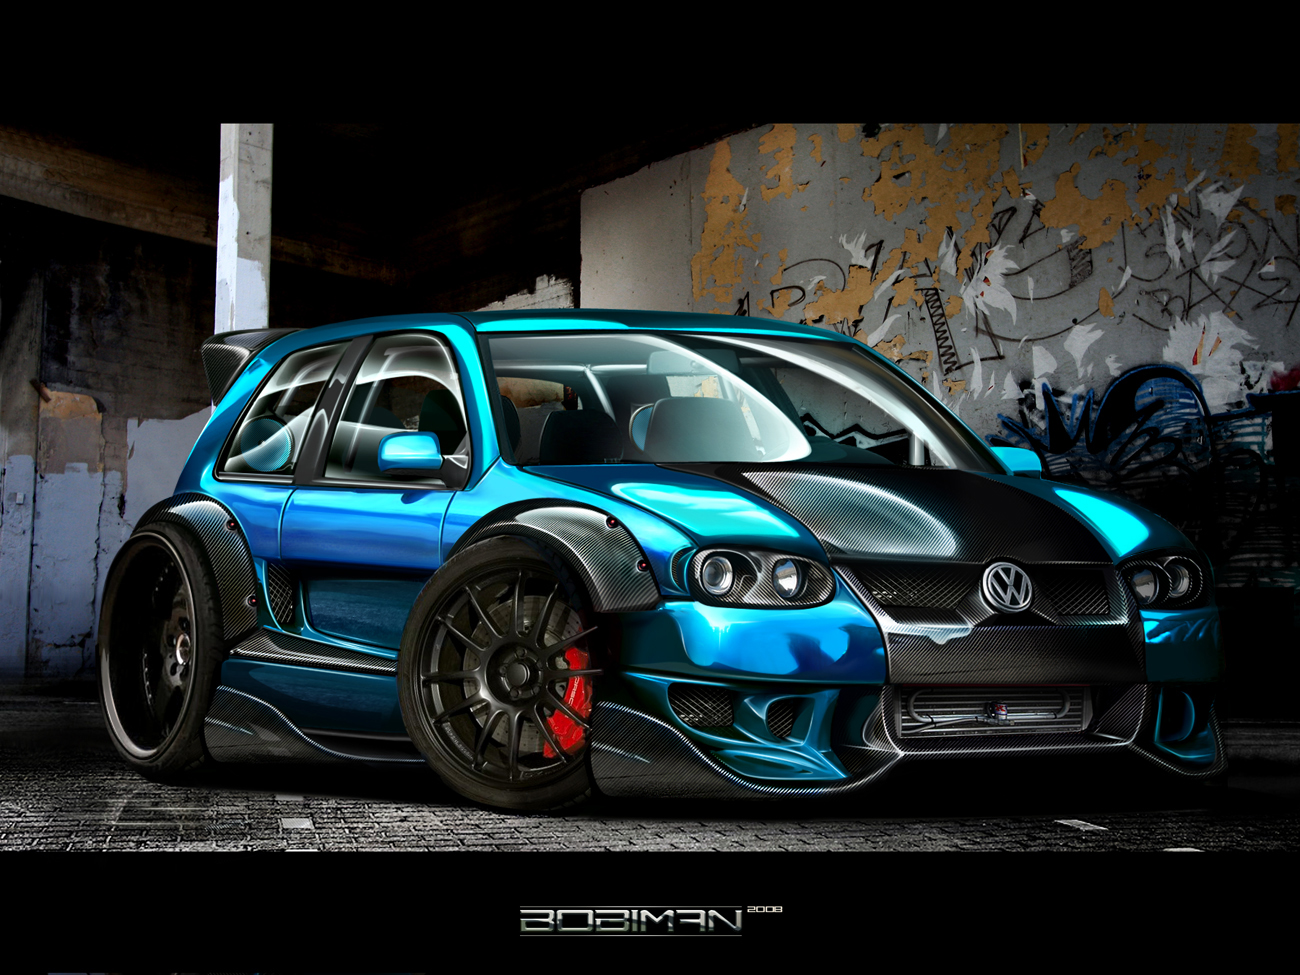 extreme-golf-iv-car-wallpaper